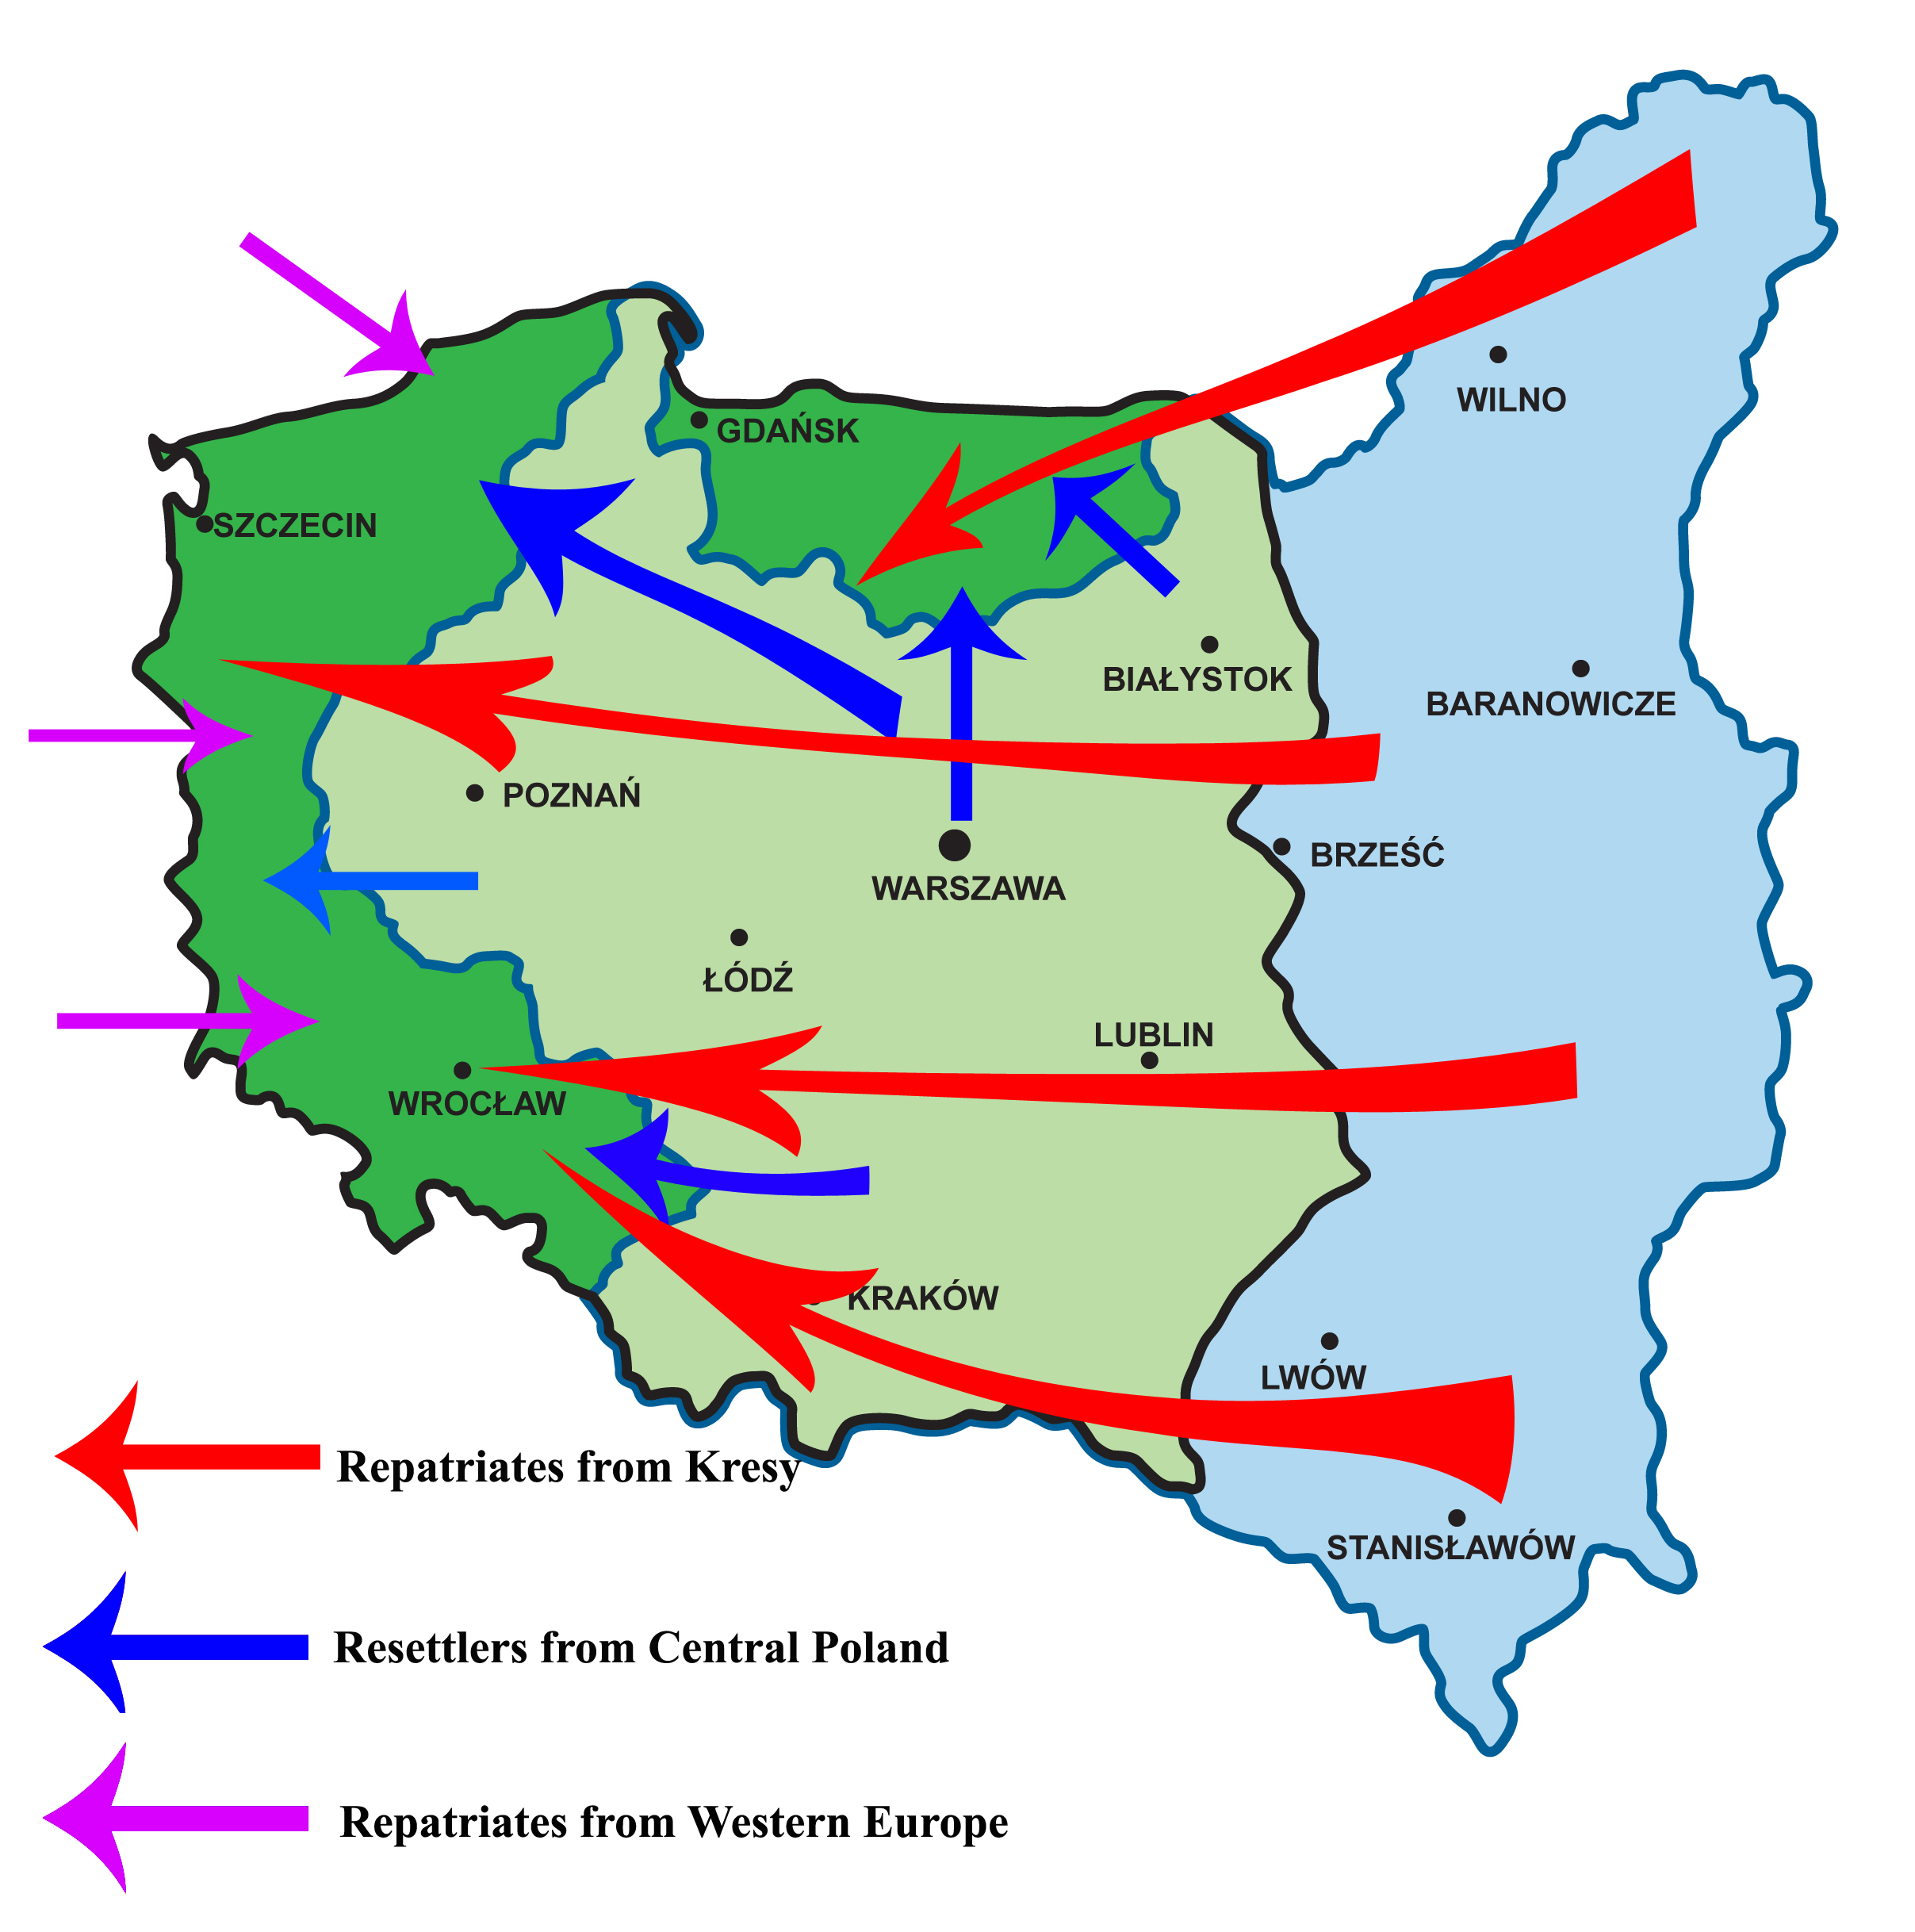 Migration patterns in post-WWII Poland